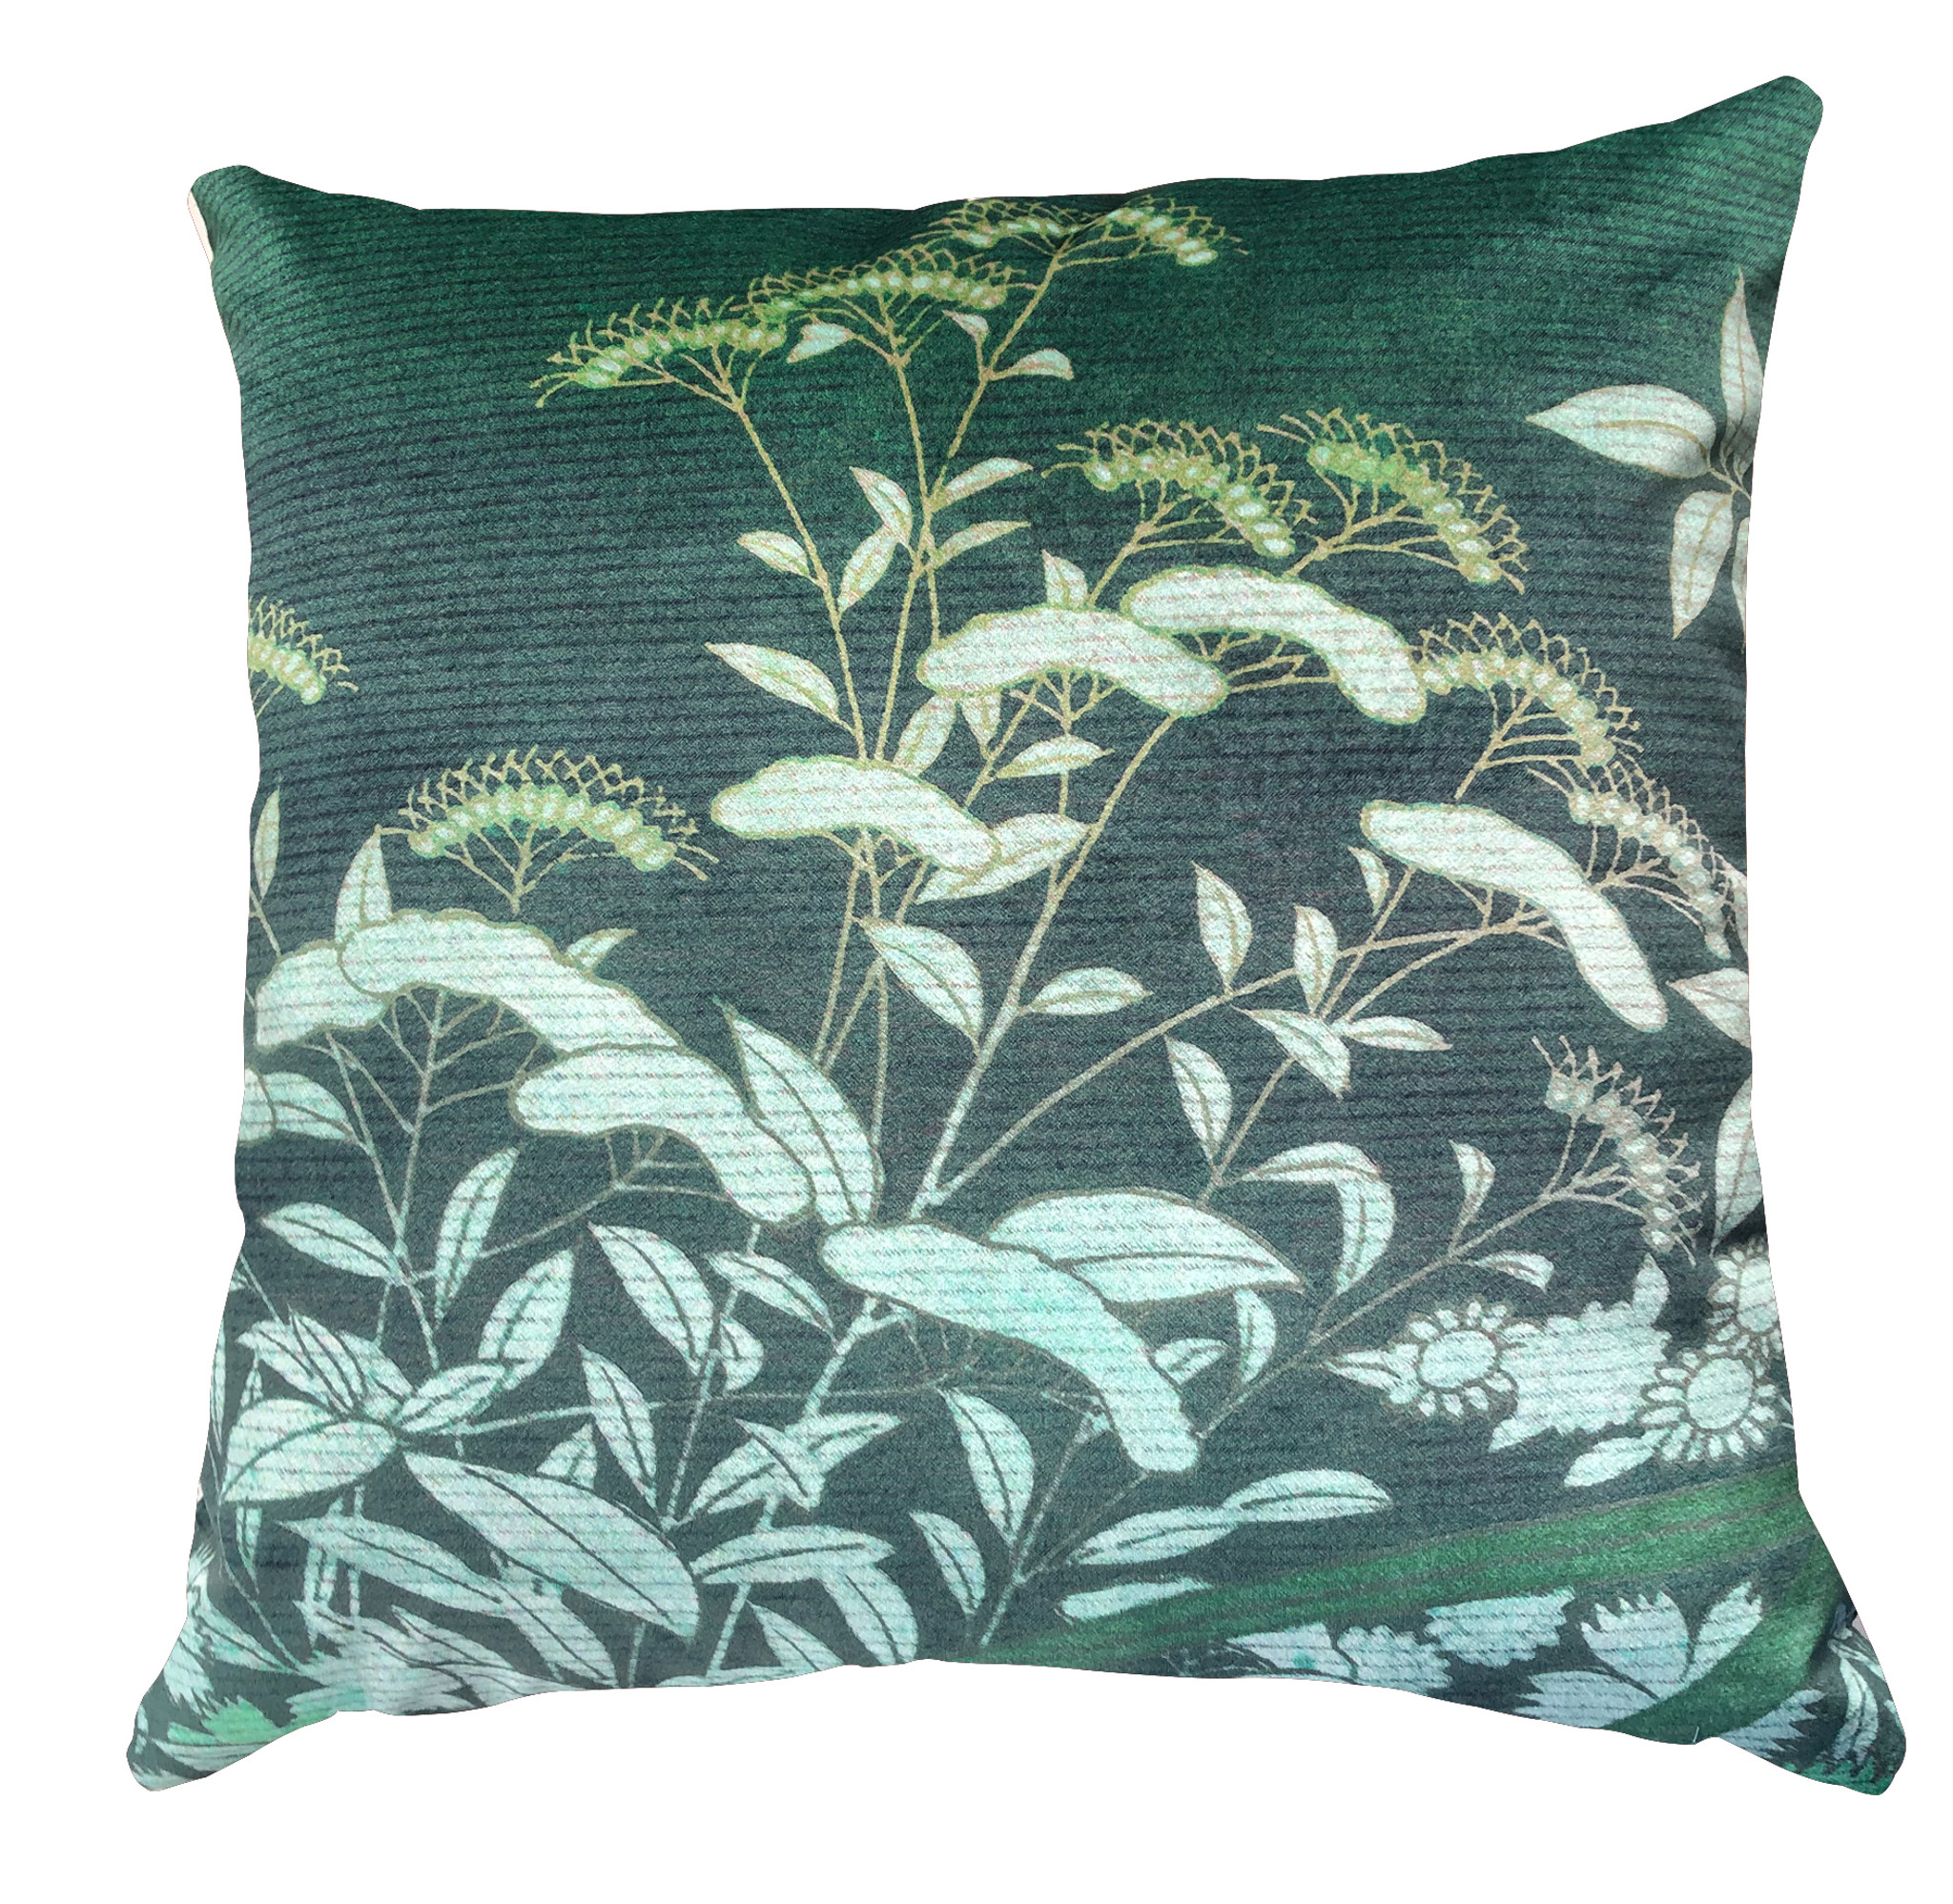 Cushion Cover - Ryokan Dreaming - Suggested Itinerary Green